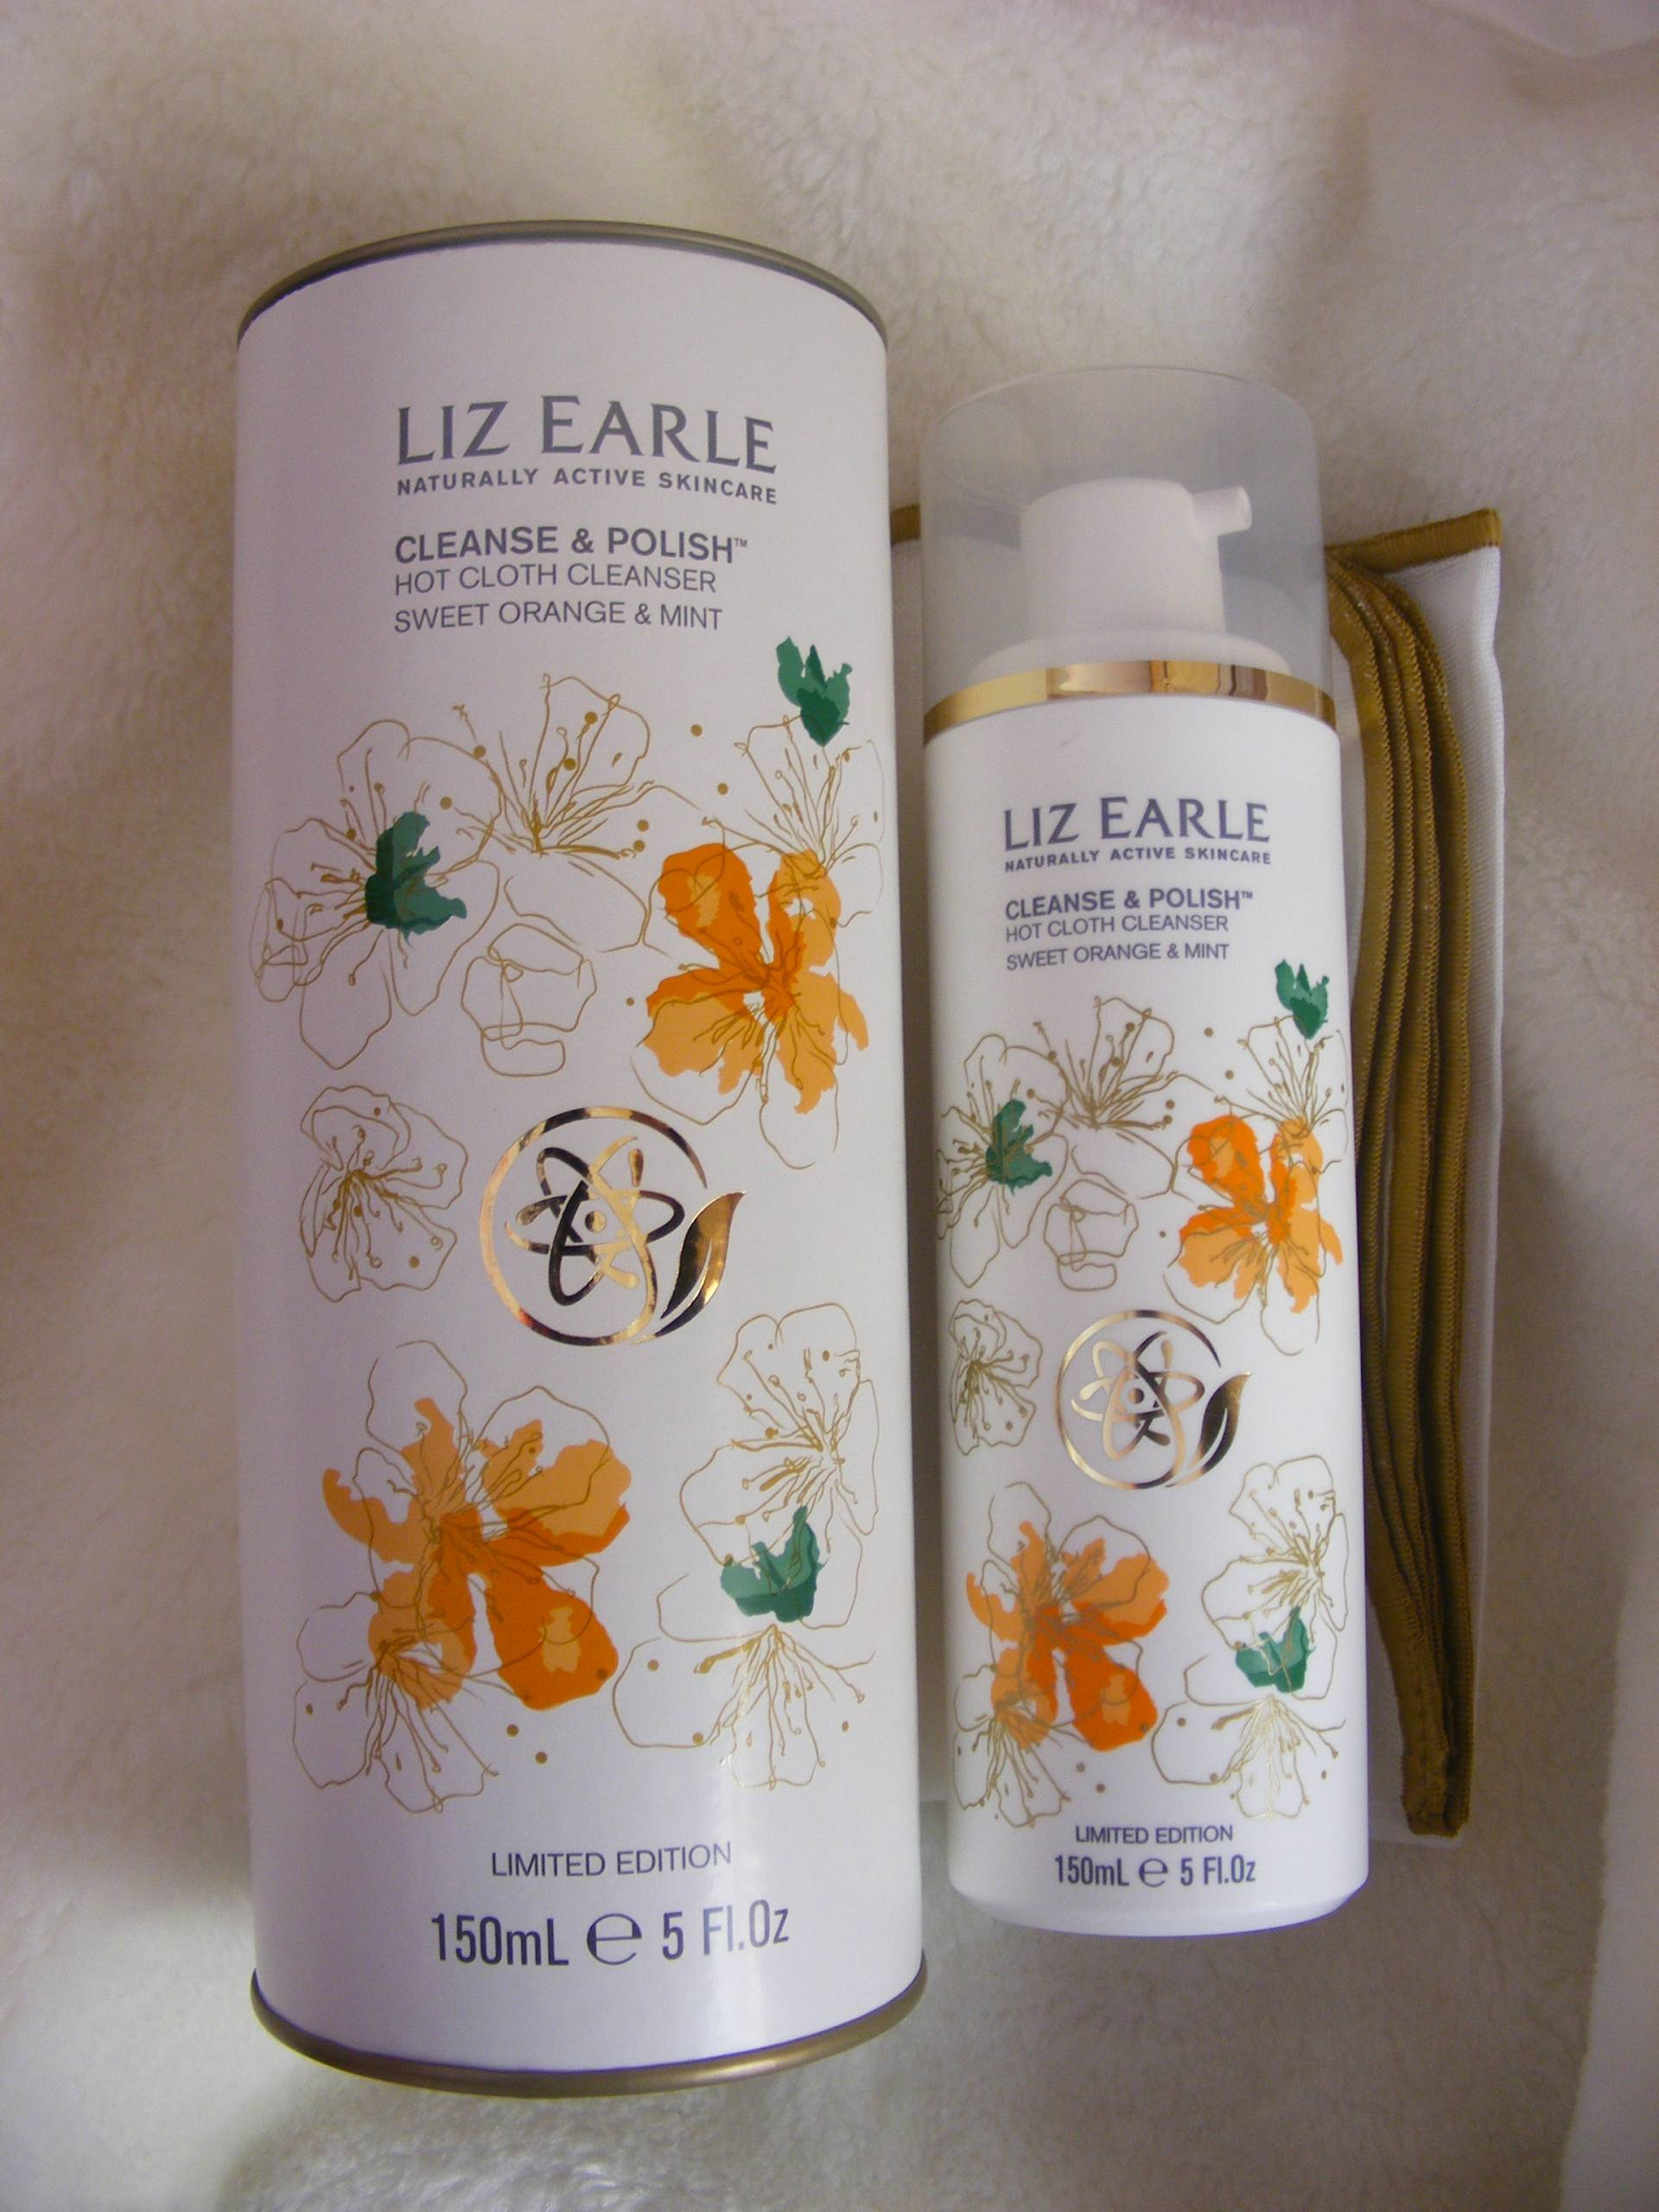 Liz Earle Cleanse and Polish Limited Edition